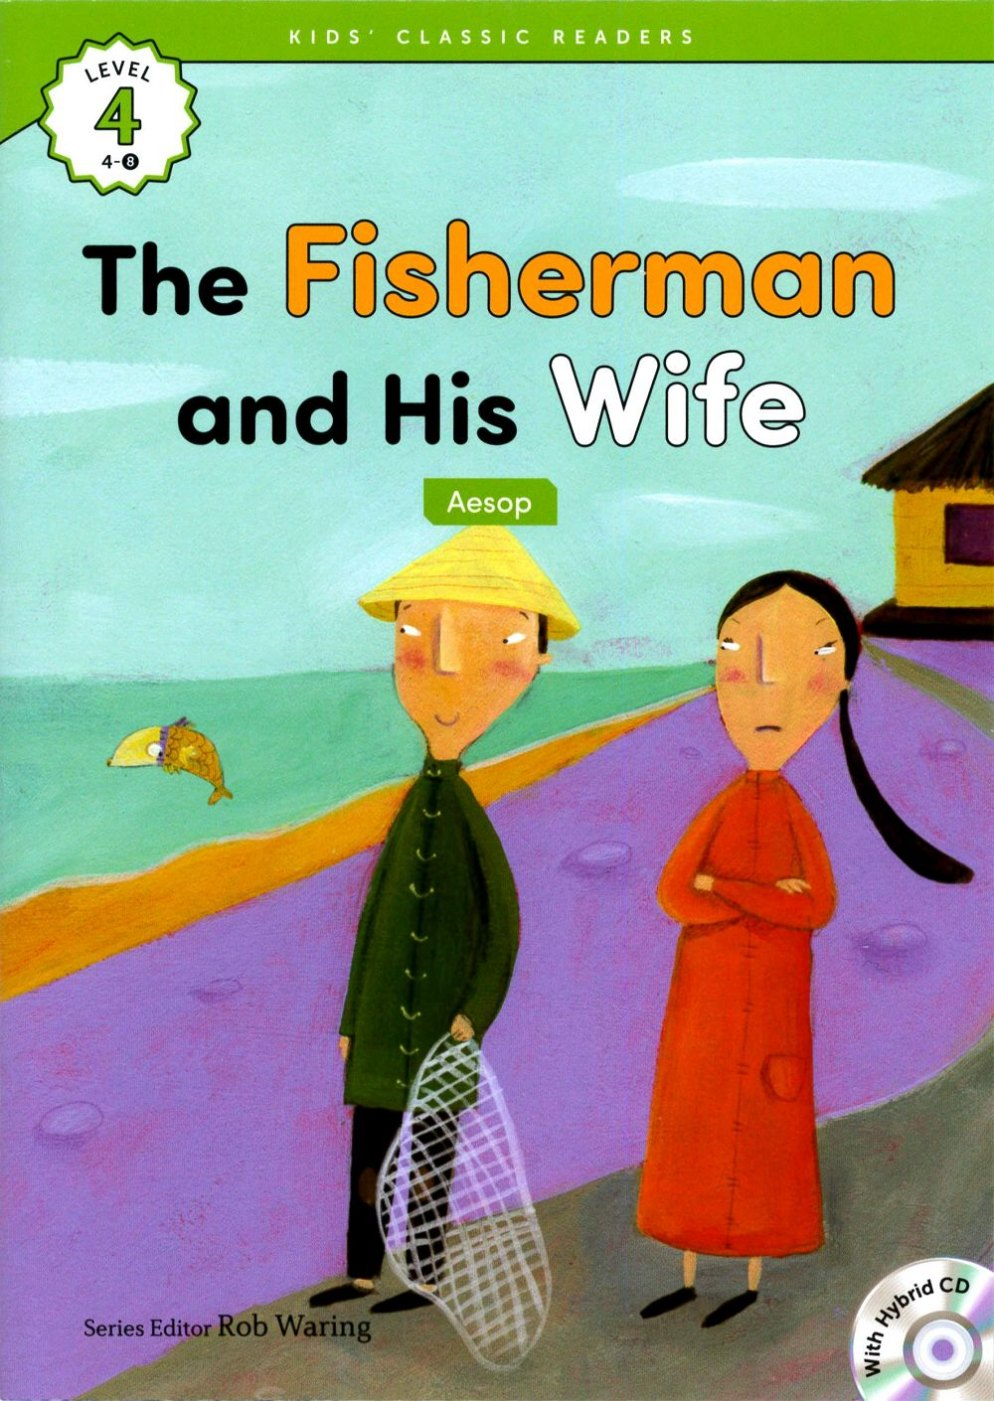 Kids' Classic Readers 4~8 The Fisherman and H